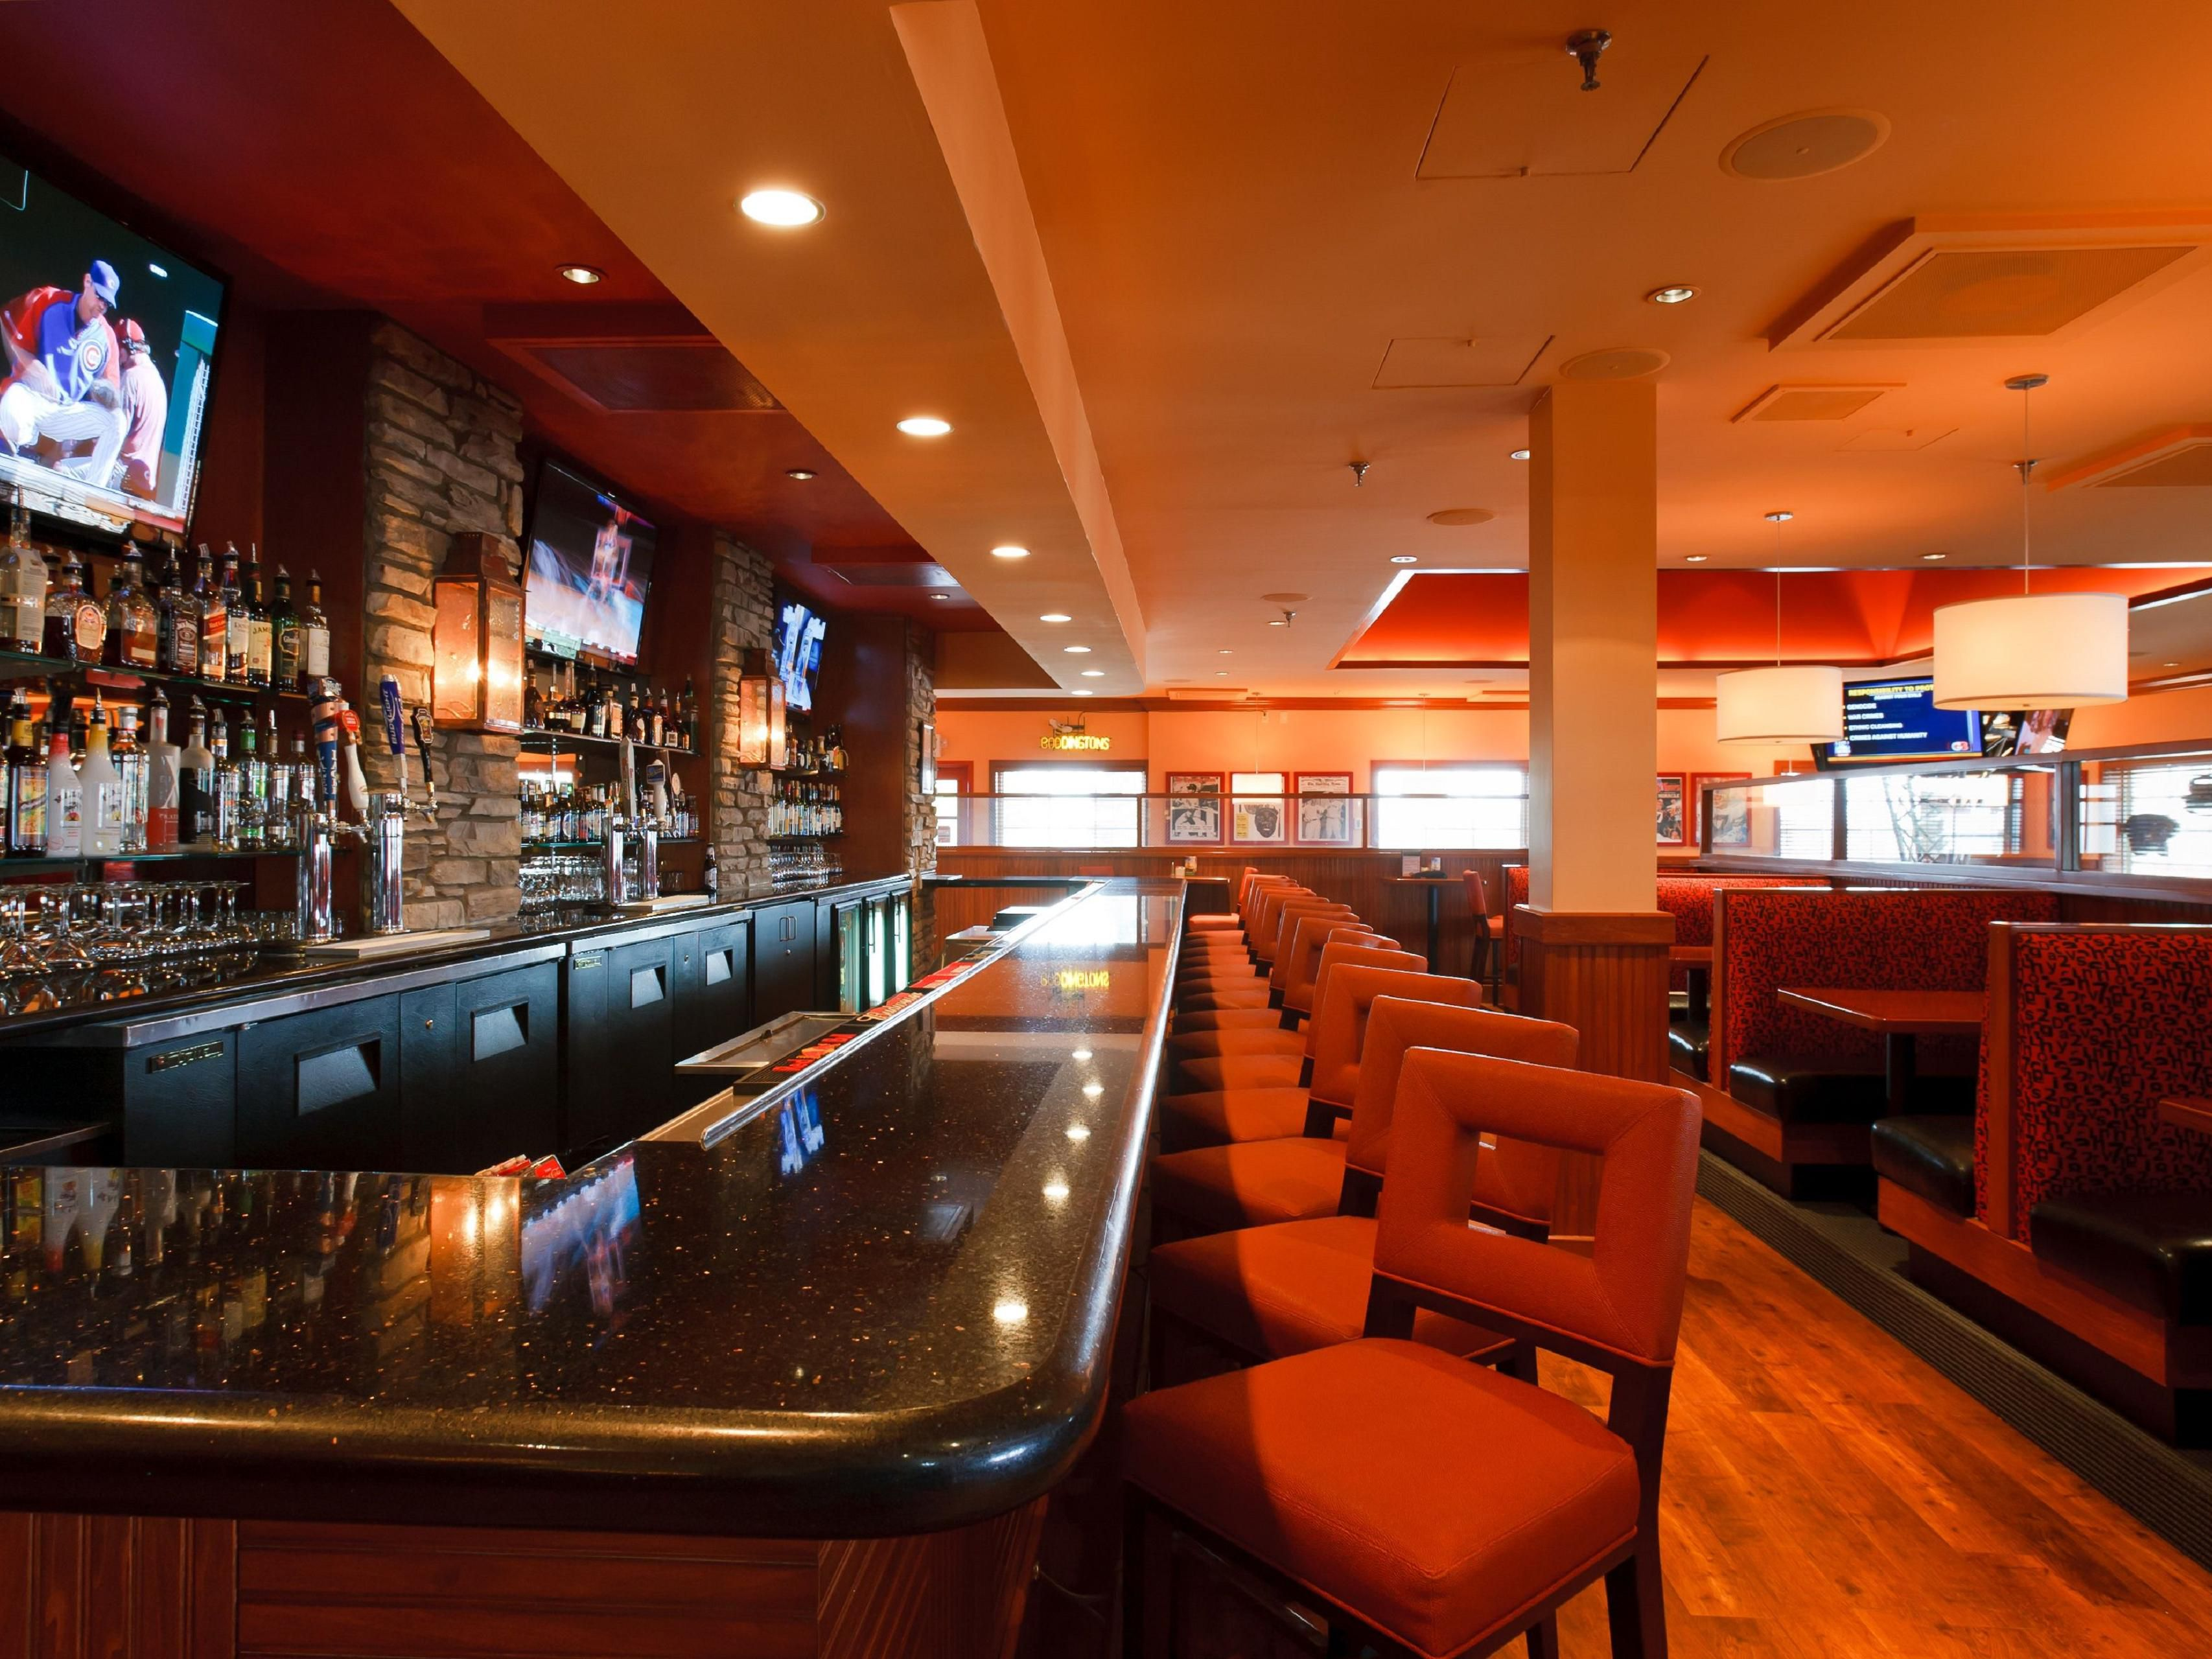 Colorado Springs Hotel Lounge - Sporting News Grill